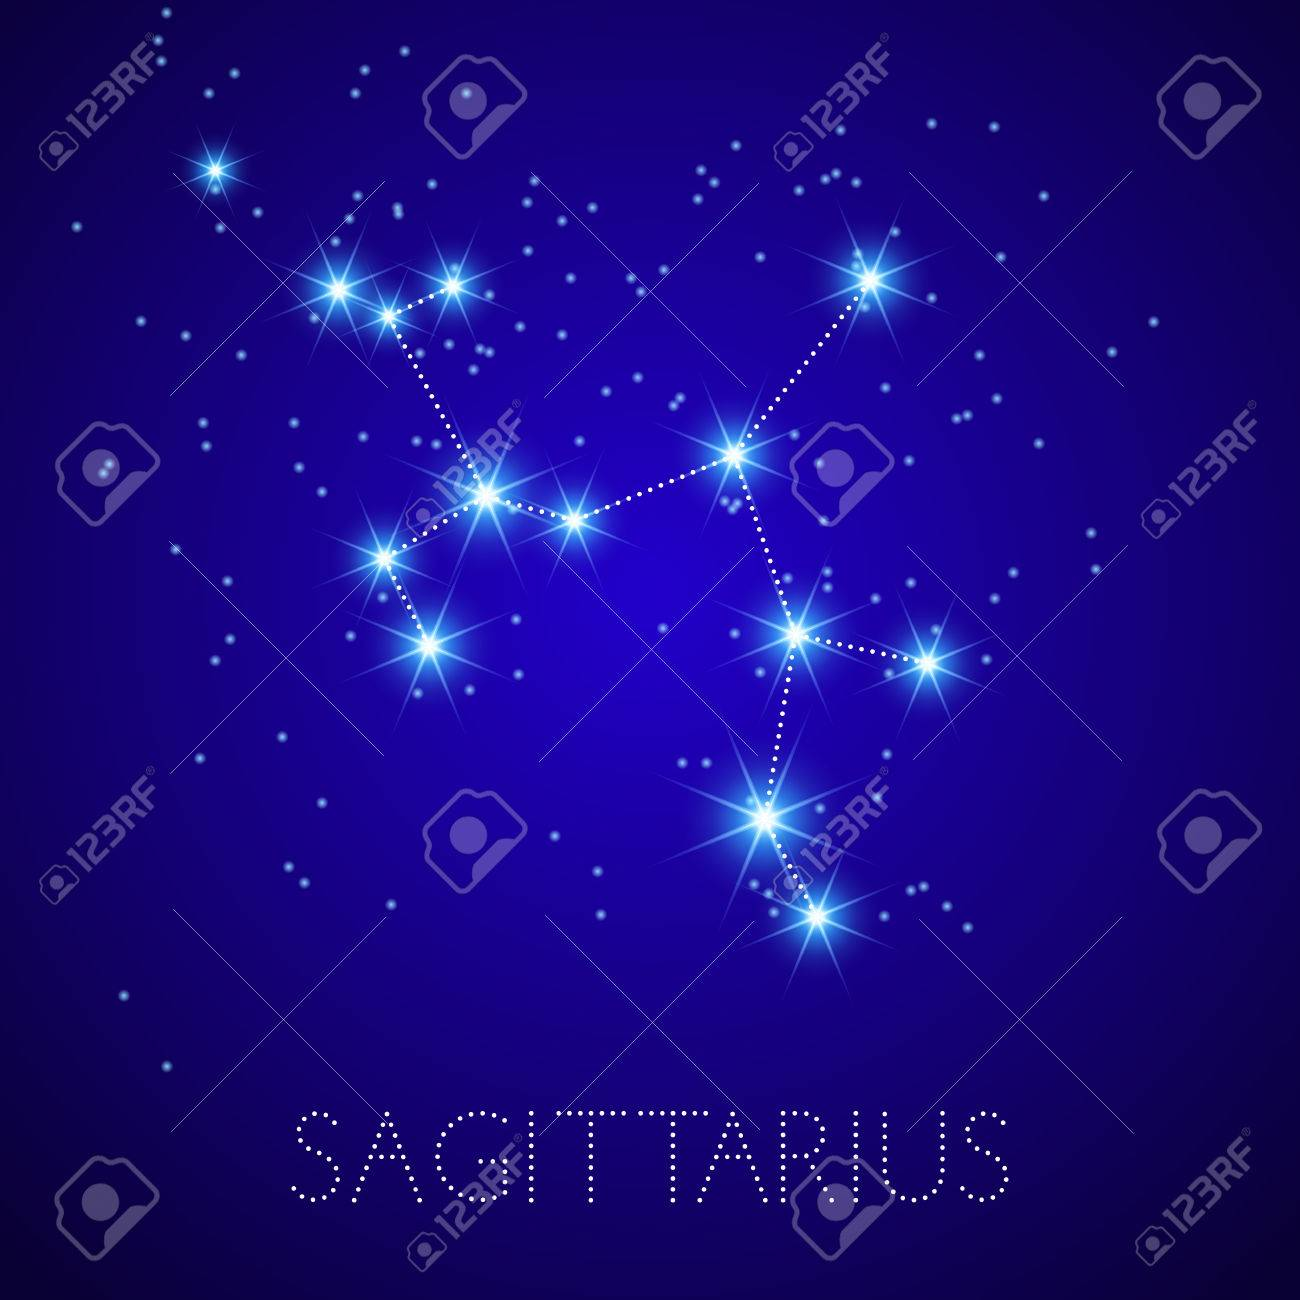 Zodiac Constellation Sagittarius Realistic Star Map Fragment - Zodiac constellations map